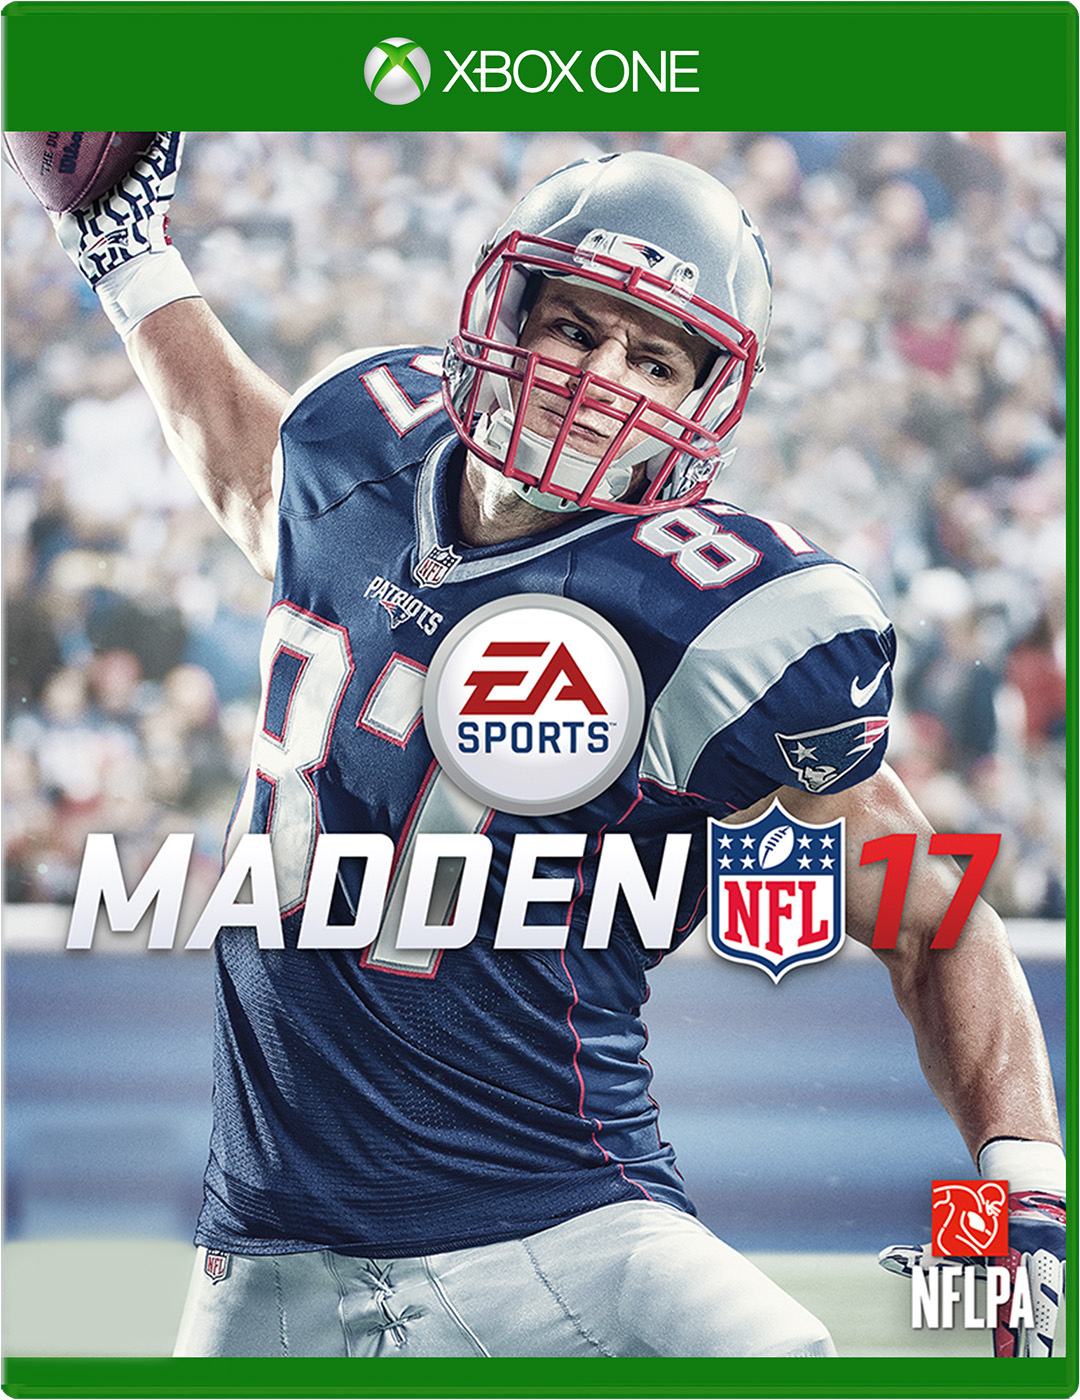 Madden NFL 17 for Xbox One Deal